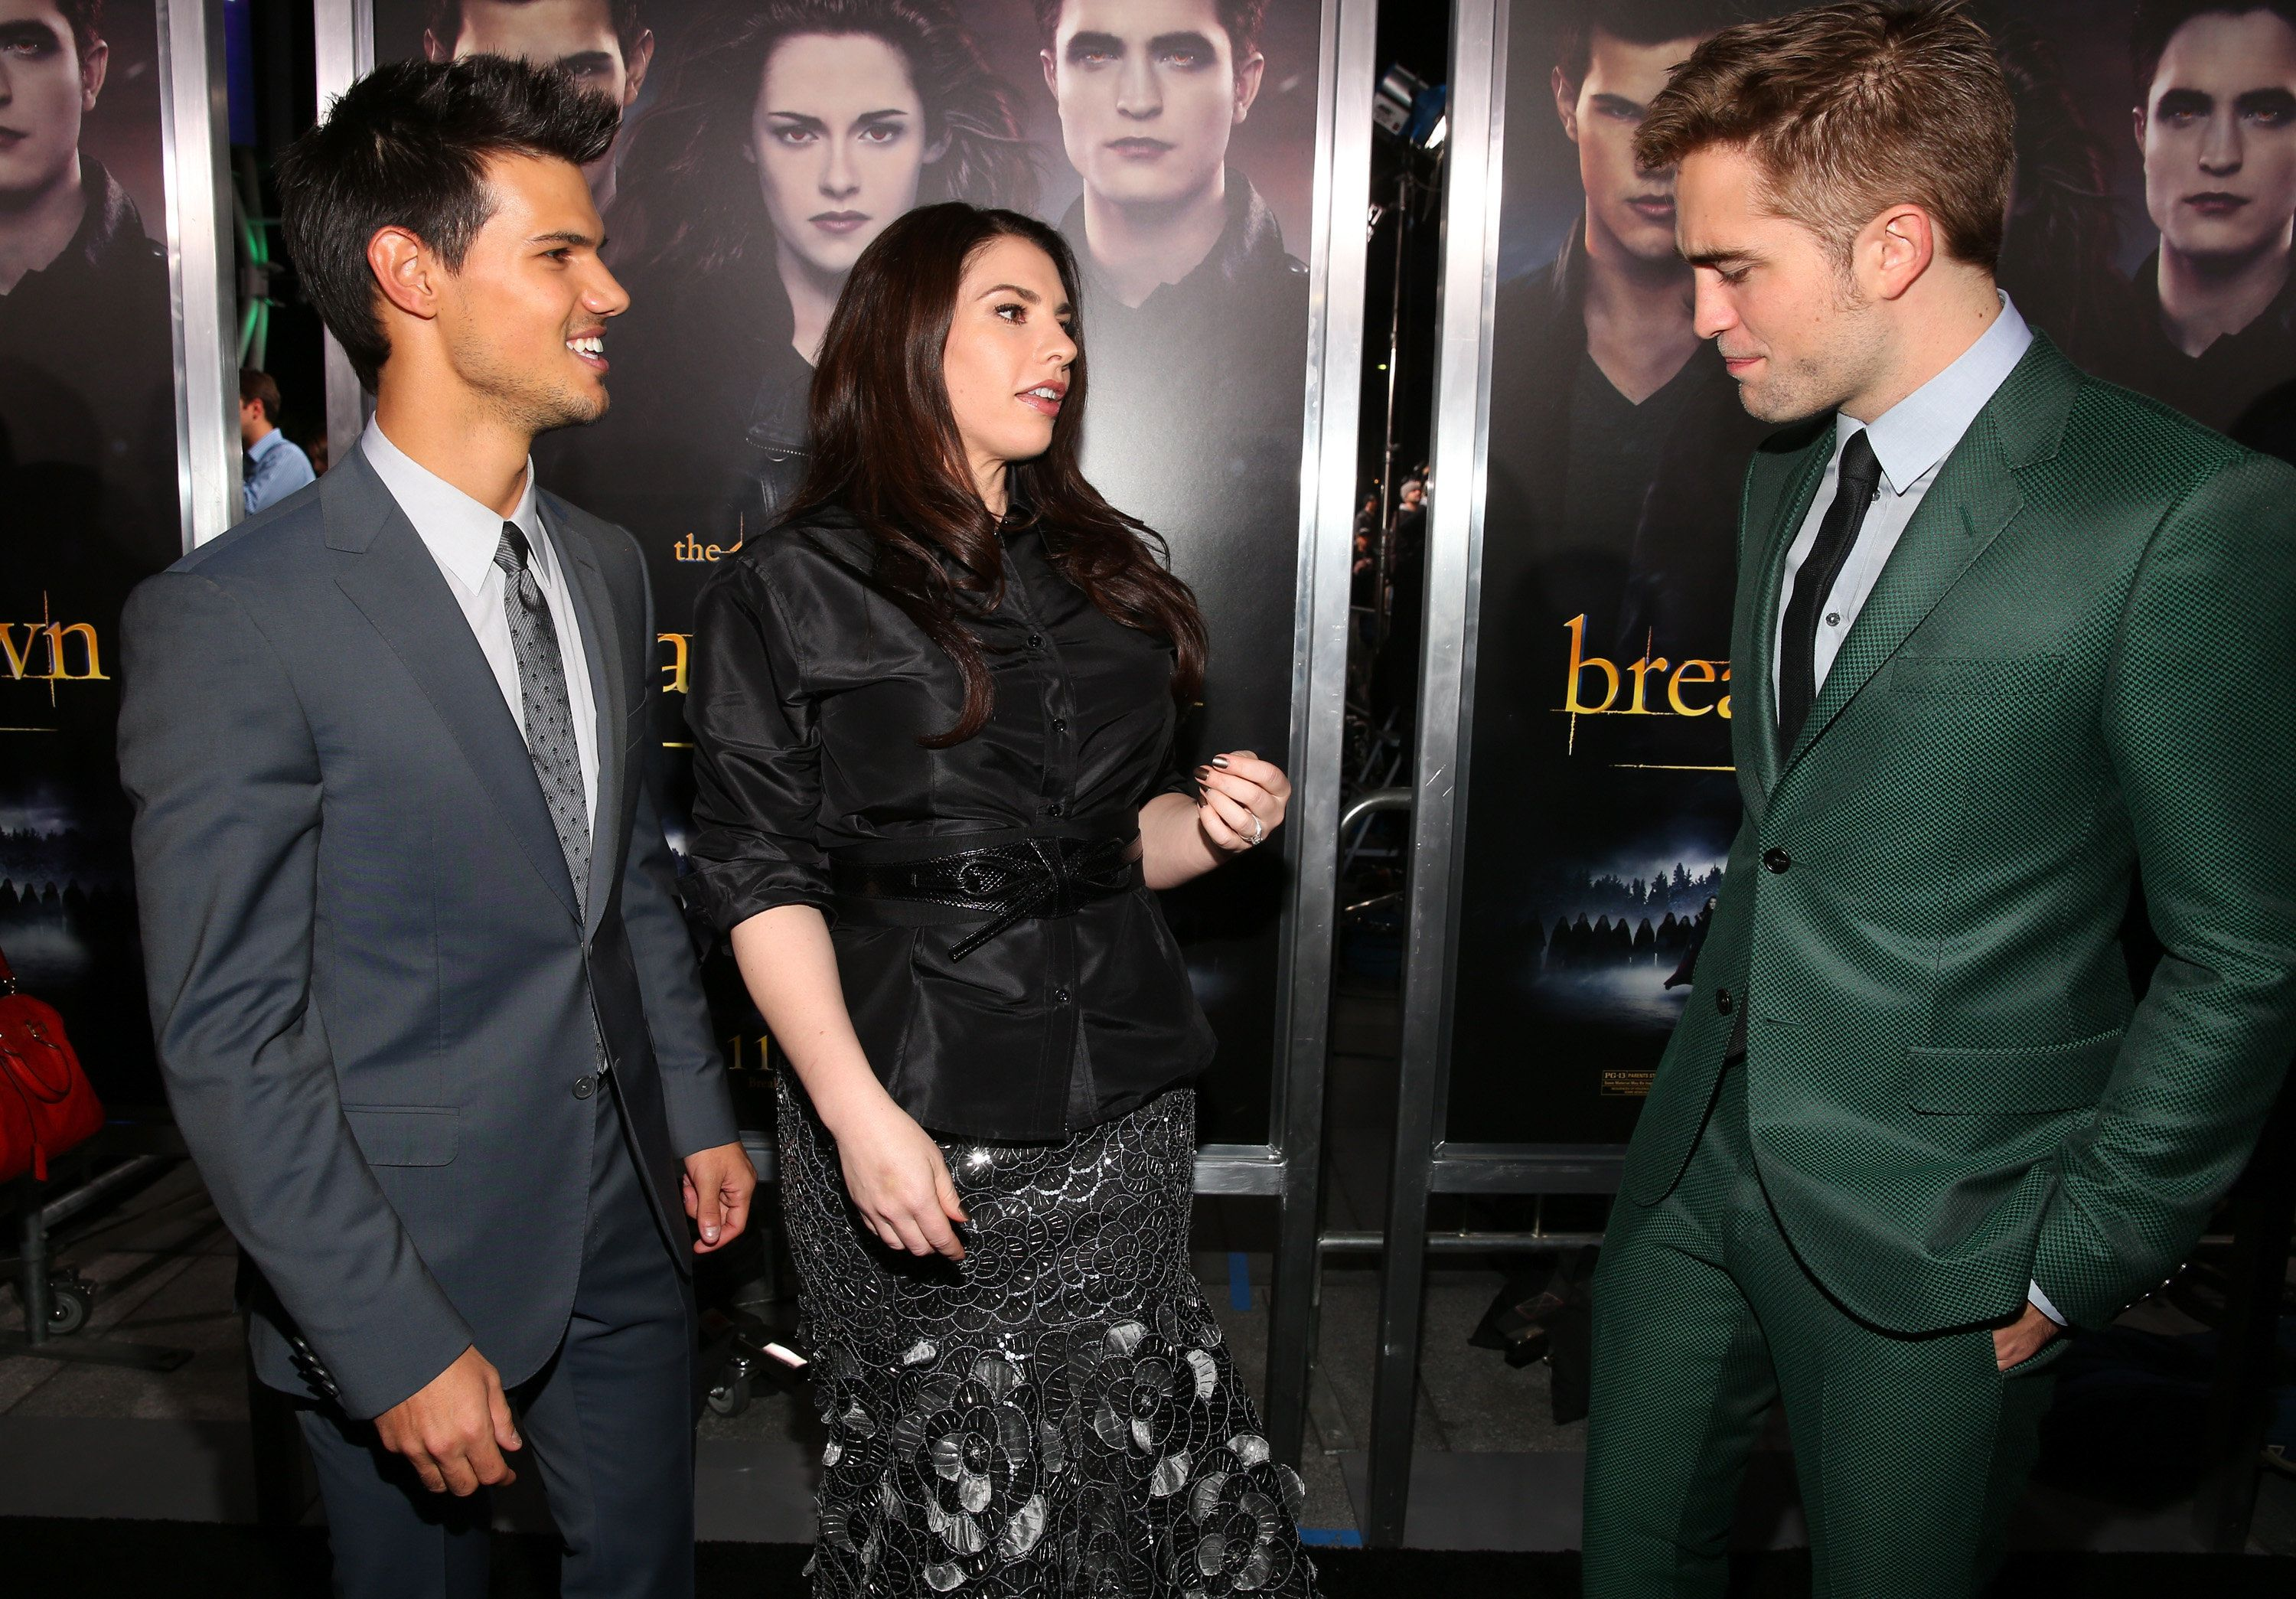 LOS ANGELES, CA - NOVEMBER 12:  (L-R) Actors Taylor Lautner, Kristen Stewart, author Stephenie Meyer, and actor Robert Pattinson arrive at the premiere of Summit Entertainment's 'The Twilight Saga: Breaking Dawn - Part 2' at Nokia Theatre L.A. Live on November 12, 2012 in Los Angeles, California.  (Photo by Christopher Polk/Getty Images)